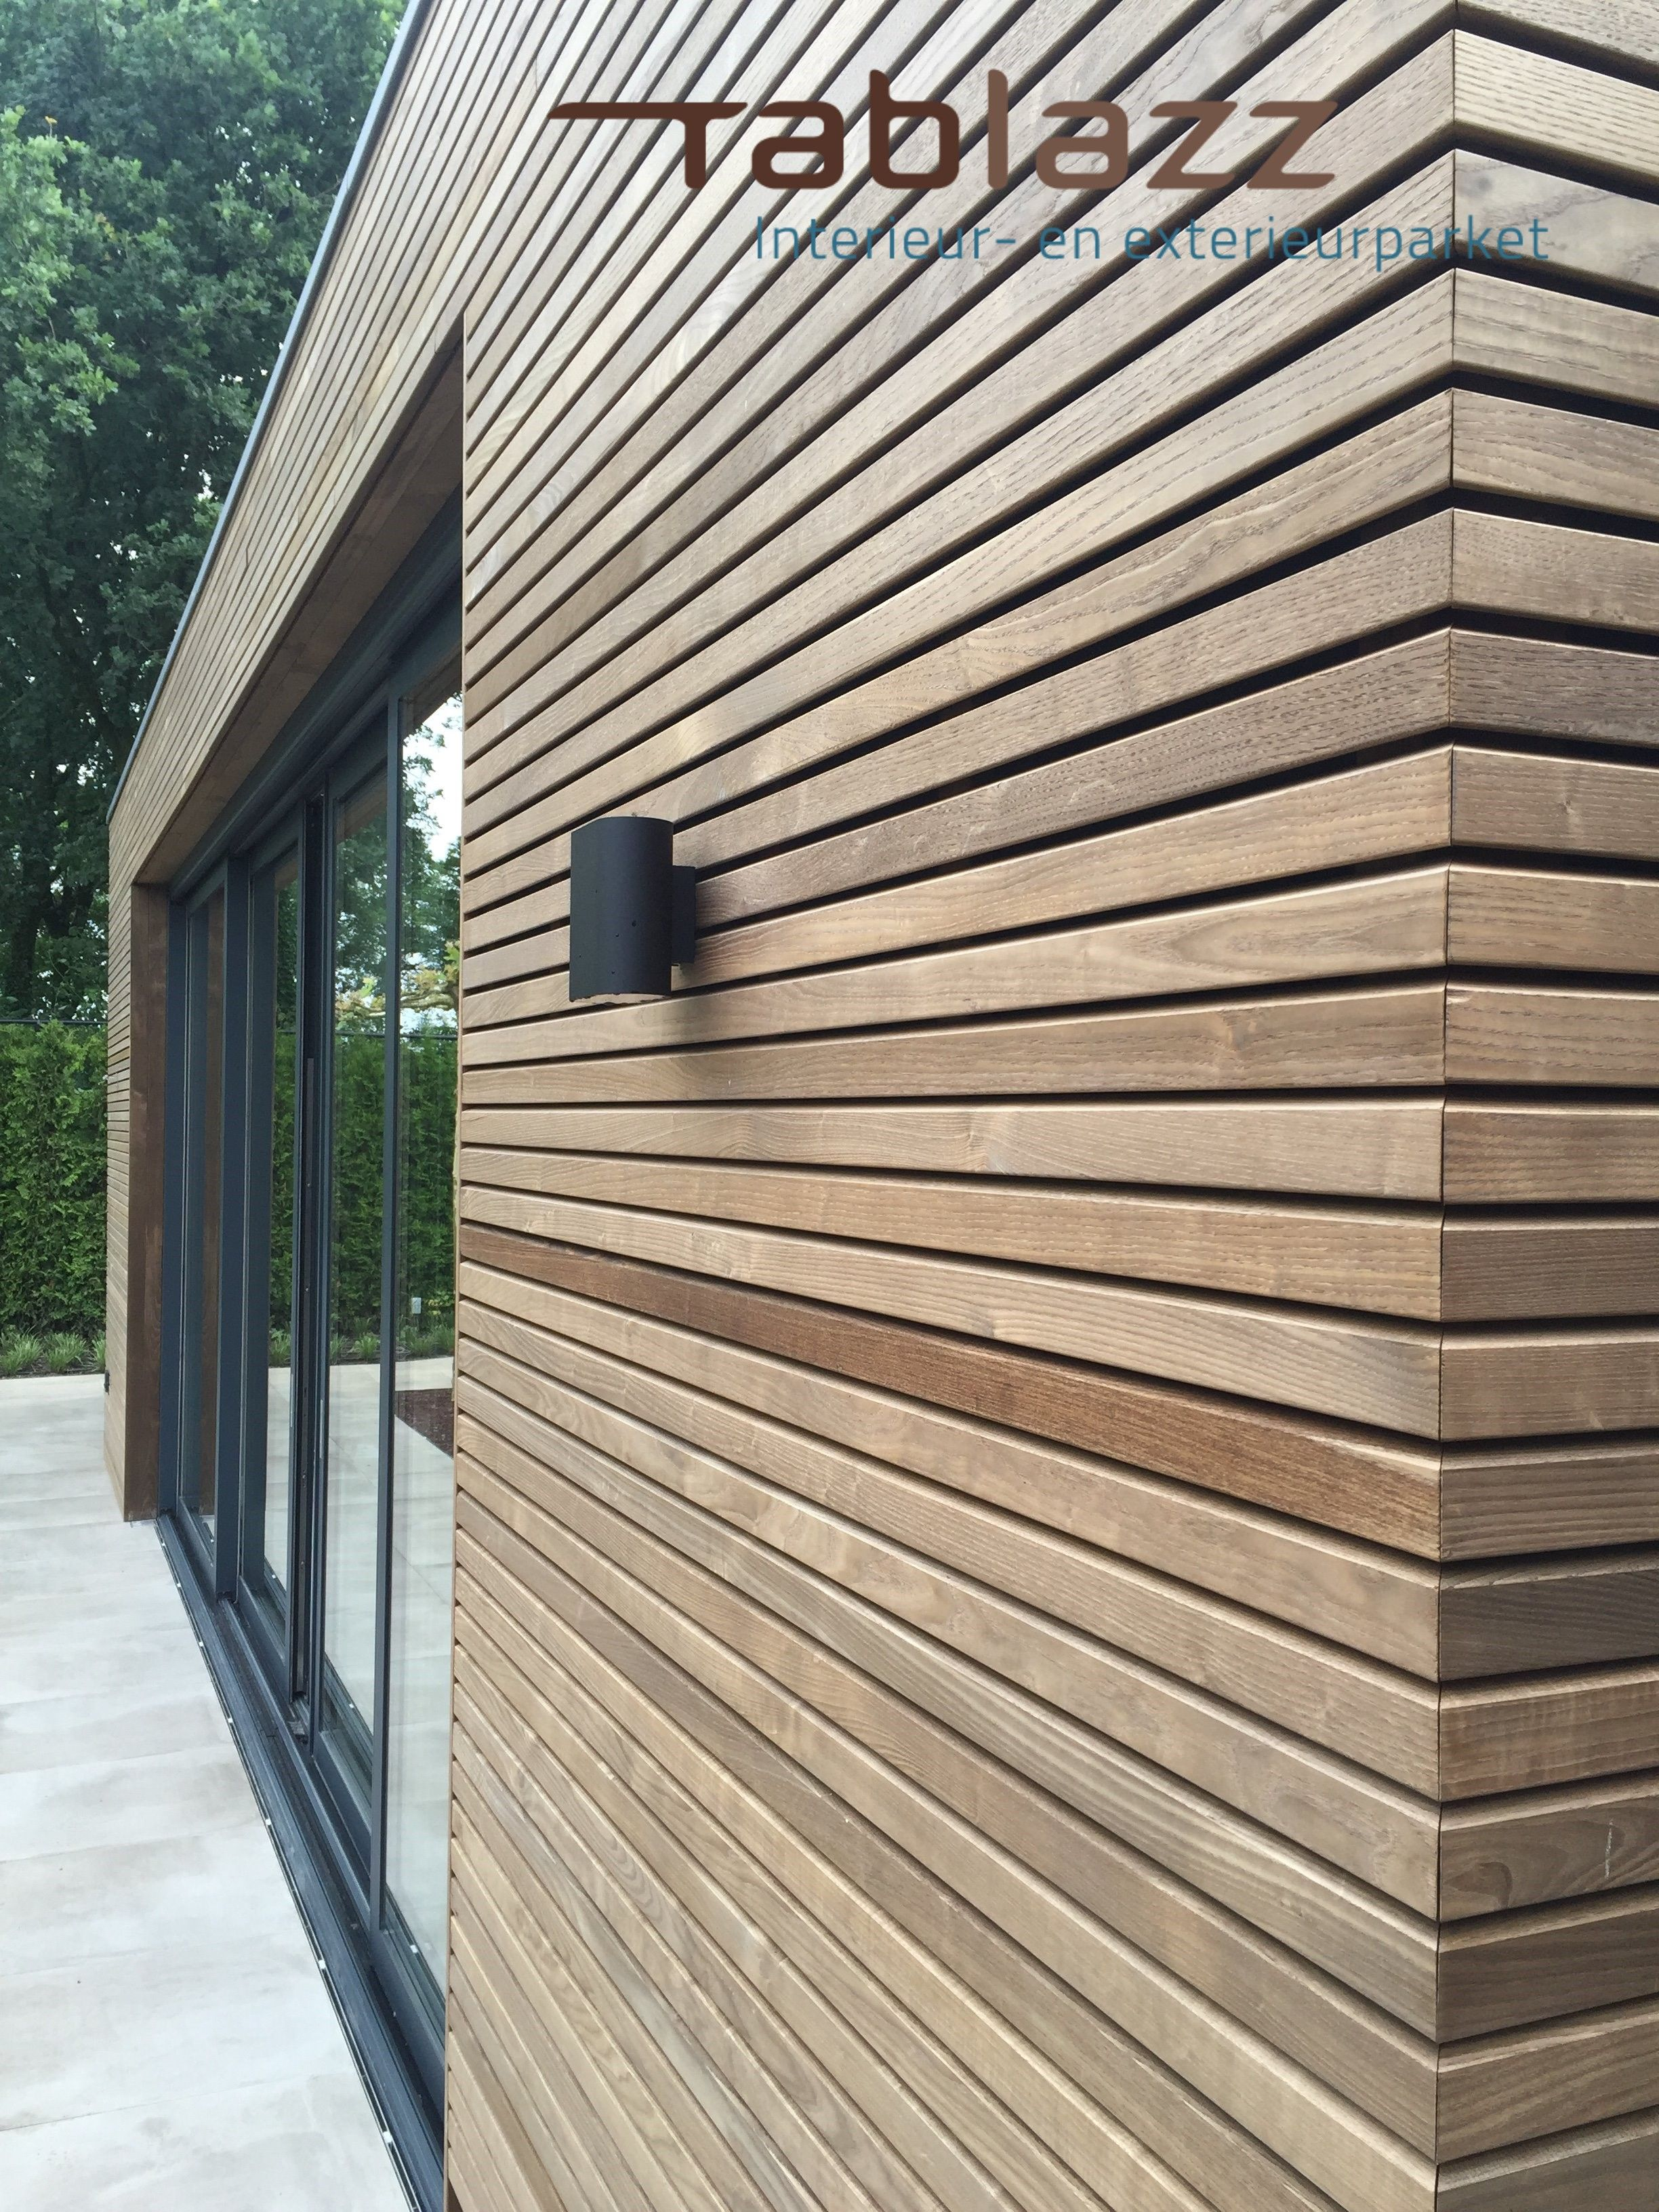 Schuifdeuren Hout Buiten.Gevelbekleding Thermo Hout In 2019 Homes Timber Cladding